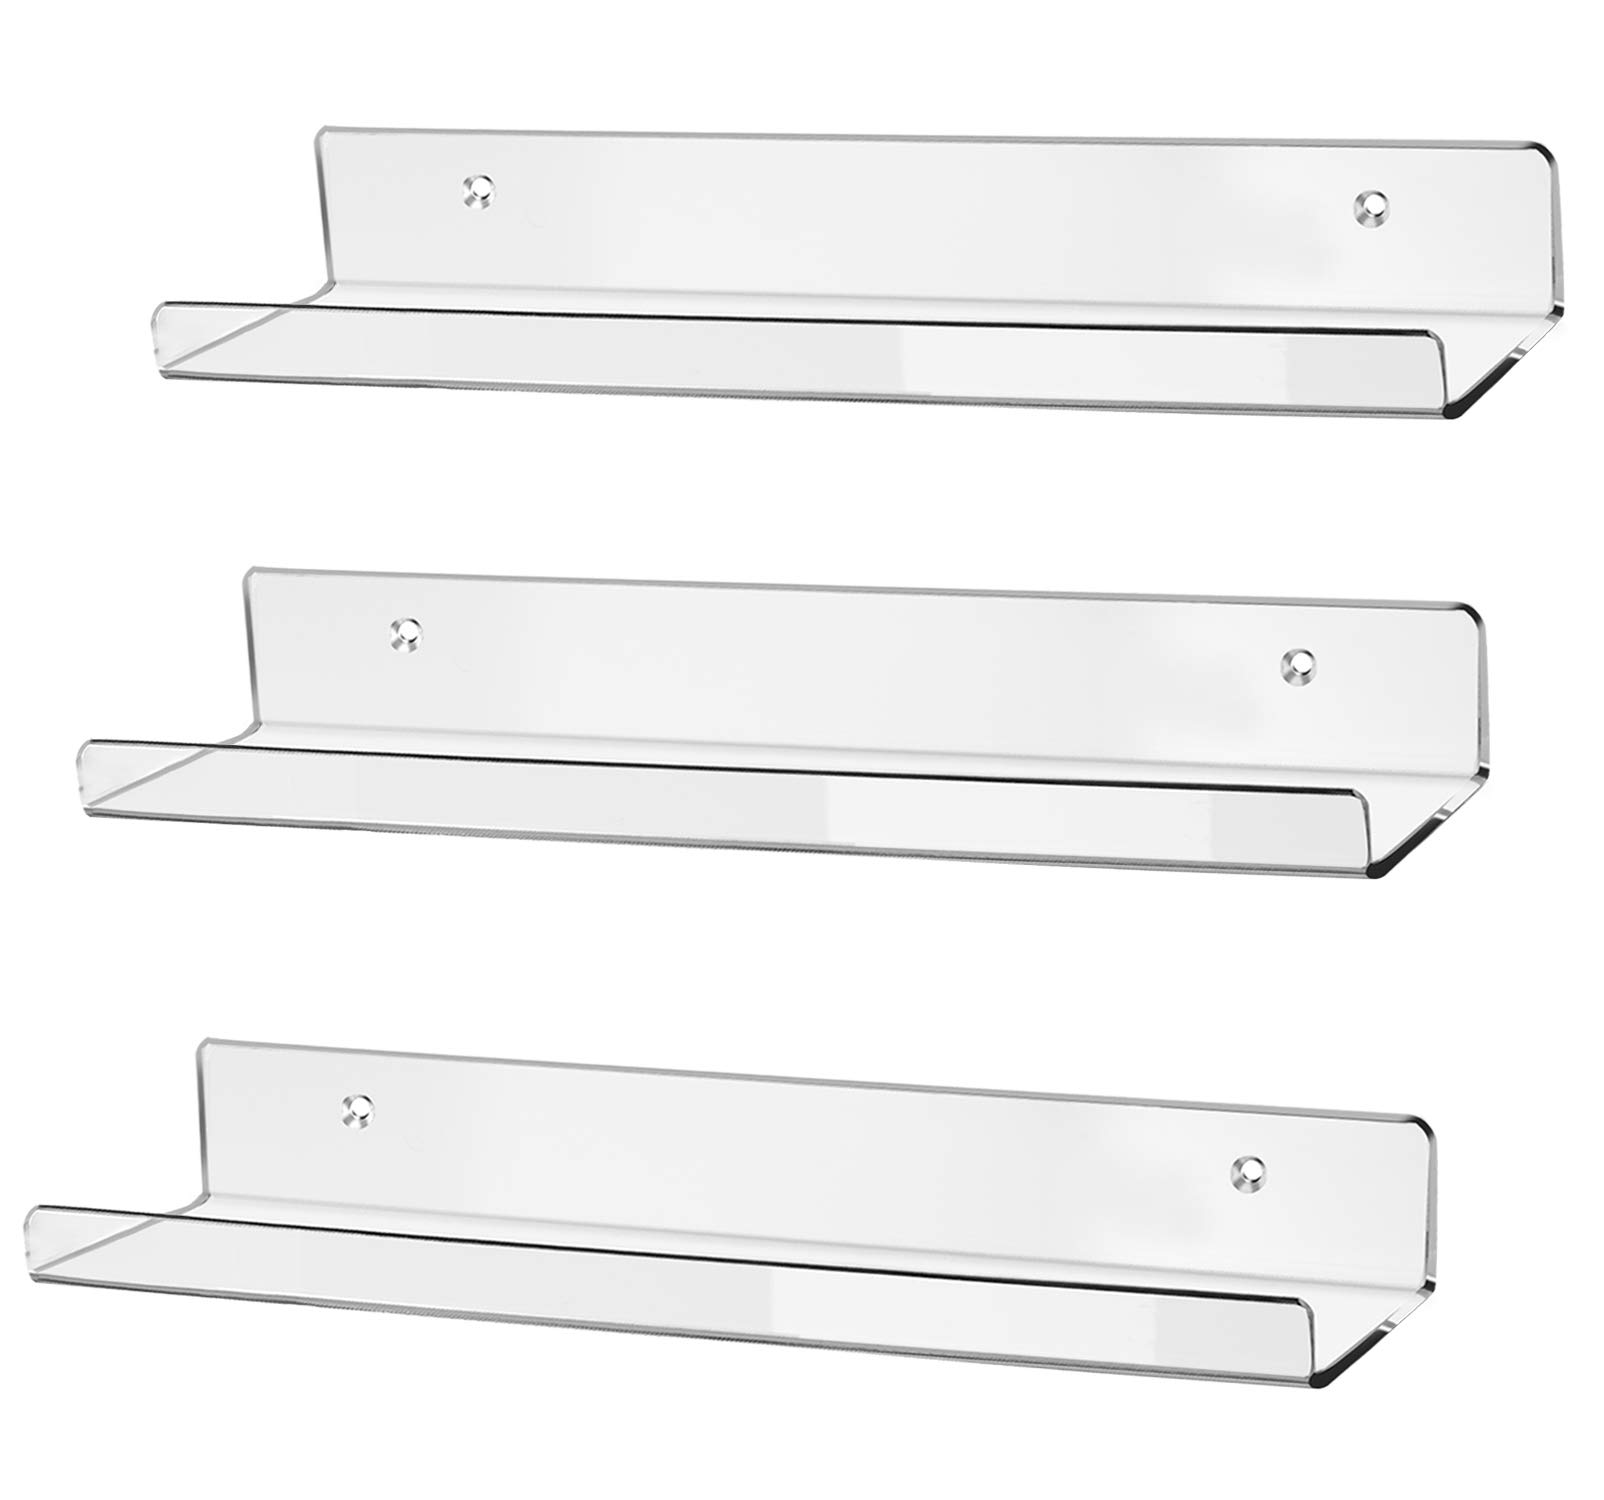 hblife 15'' Acrylic Floating Wall Ledge Shelf, Wall Mounted Nursery Kids Bookshelf, Invisible Spice Rack, Clear 5MM Thick Bathroom Storage Shelves Display Organizer, 15'' L x 4'' D x 2'' H, Set of 3